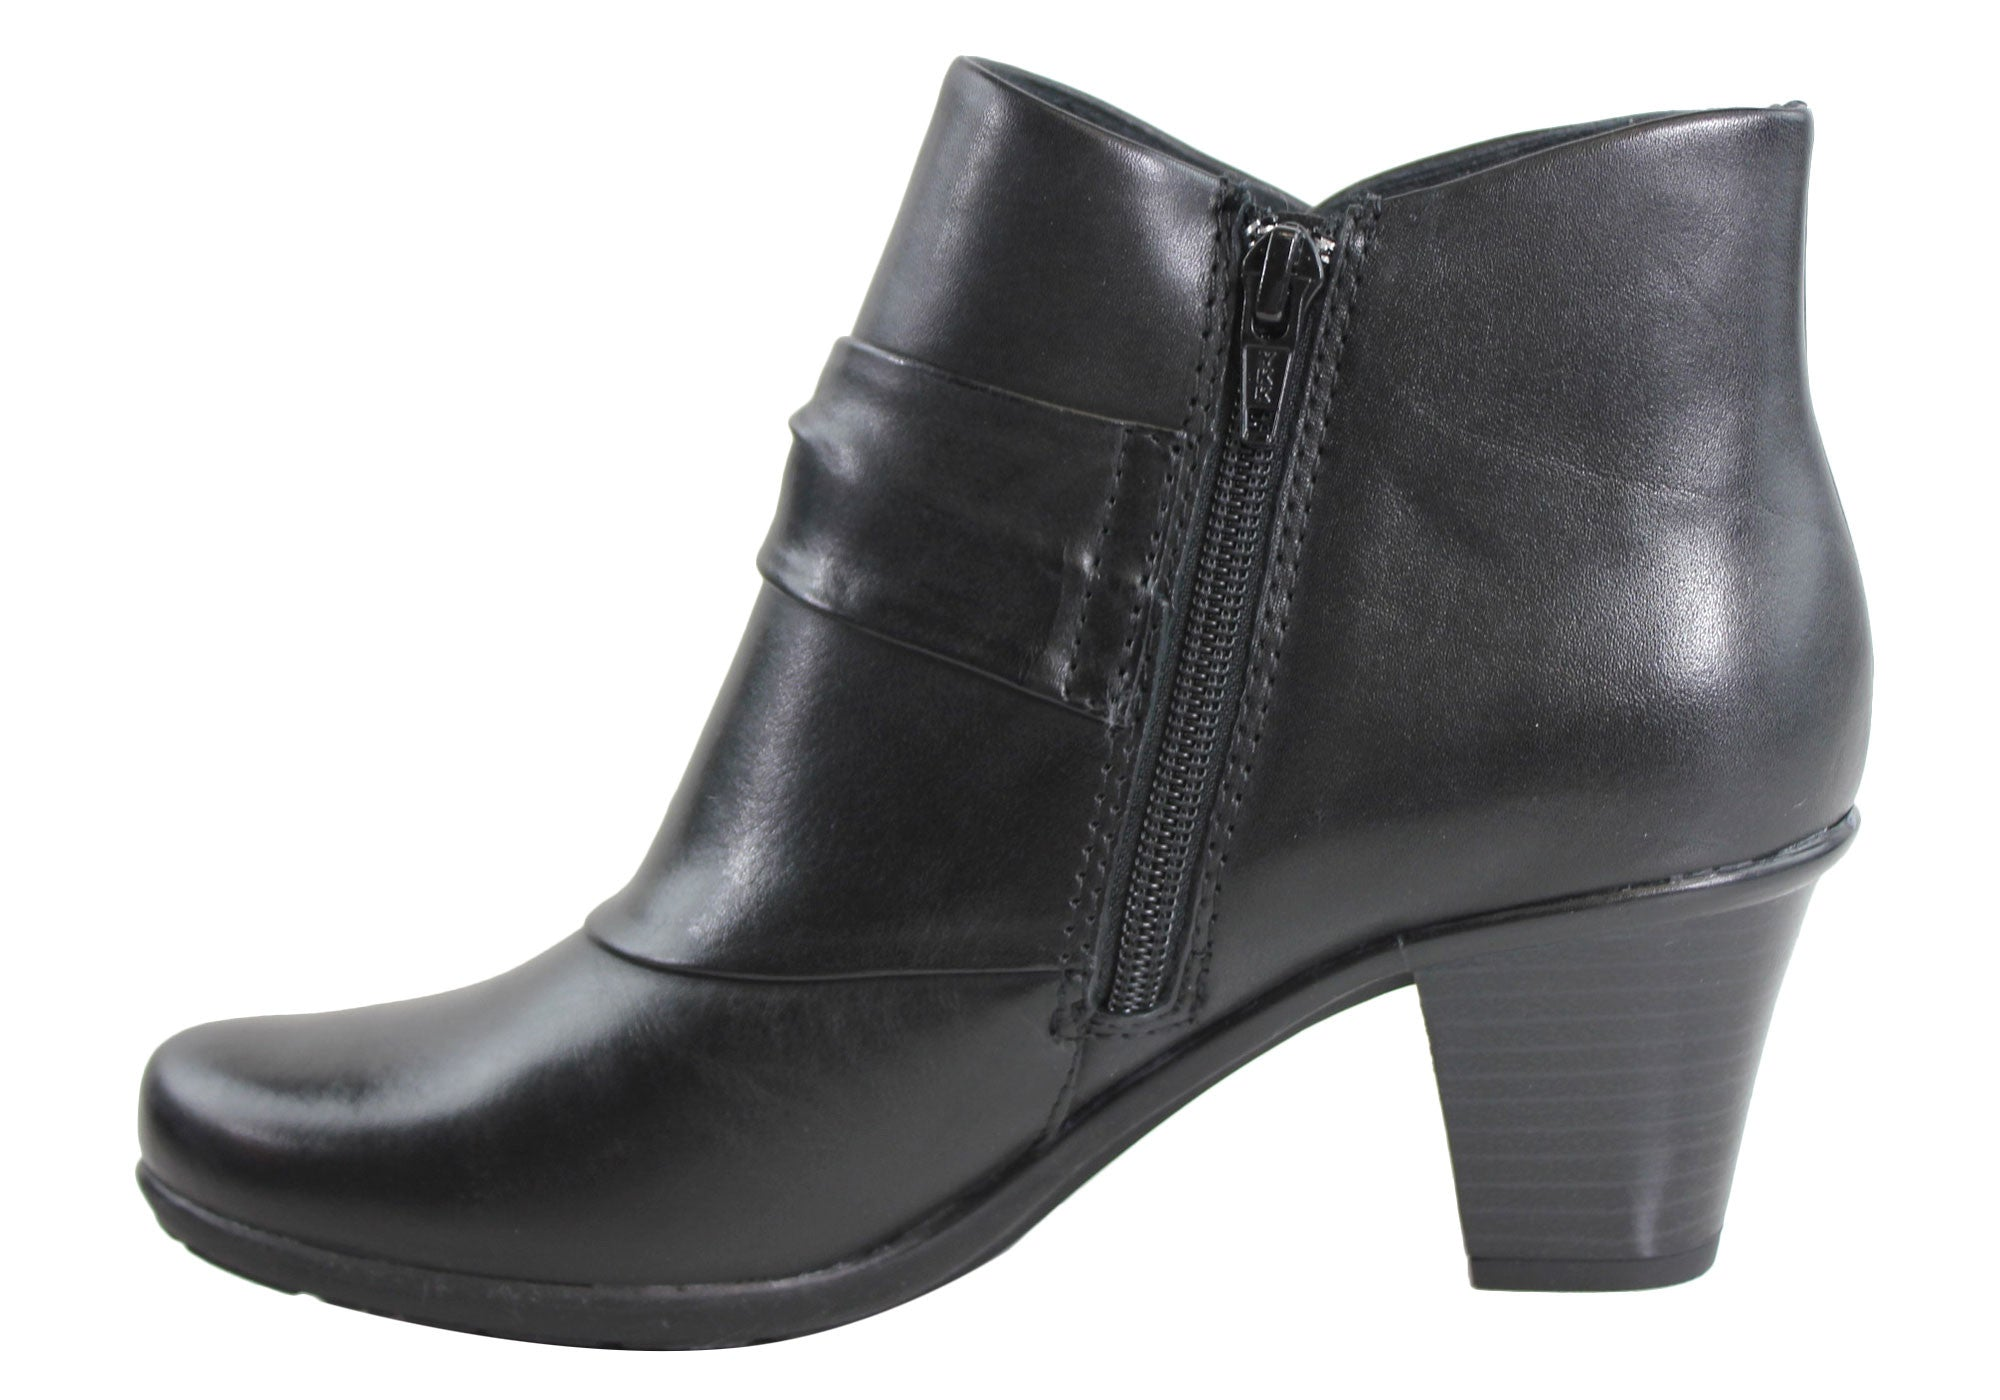 Planet Shoes Portia Womens Leather Ankle Boots